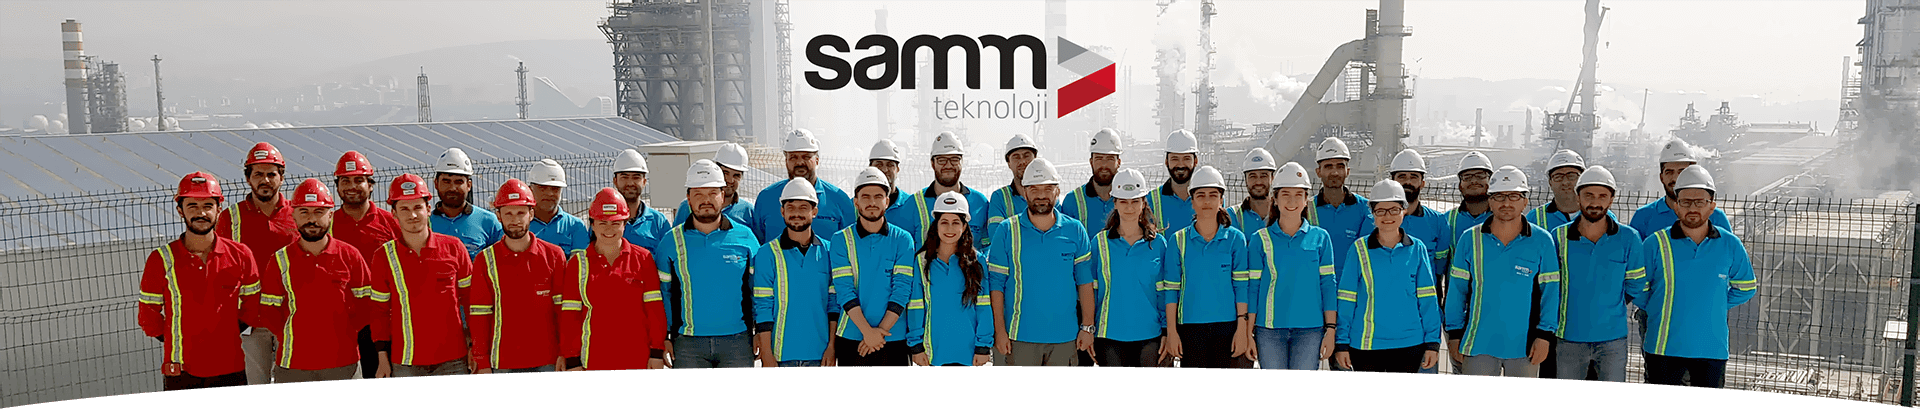 As Samm Technology, we work in Electrical and Instrumental Contacting Business with our experienced engineering team.